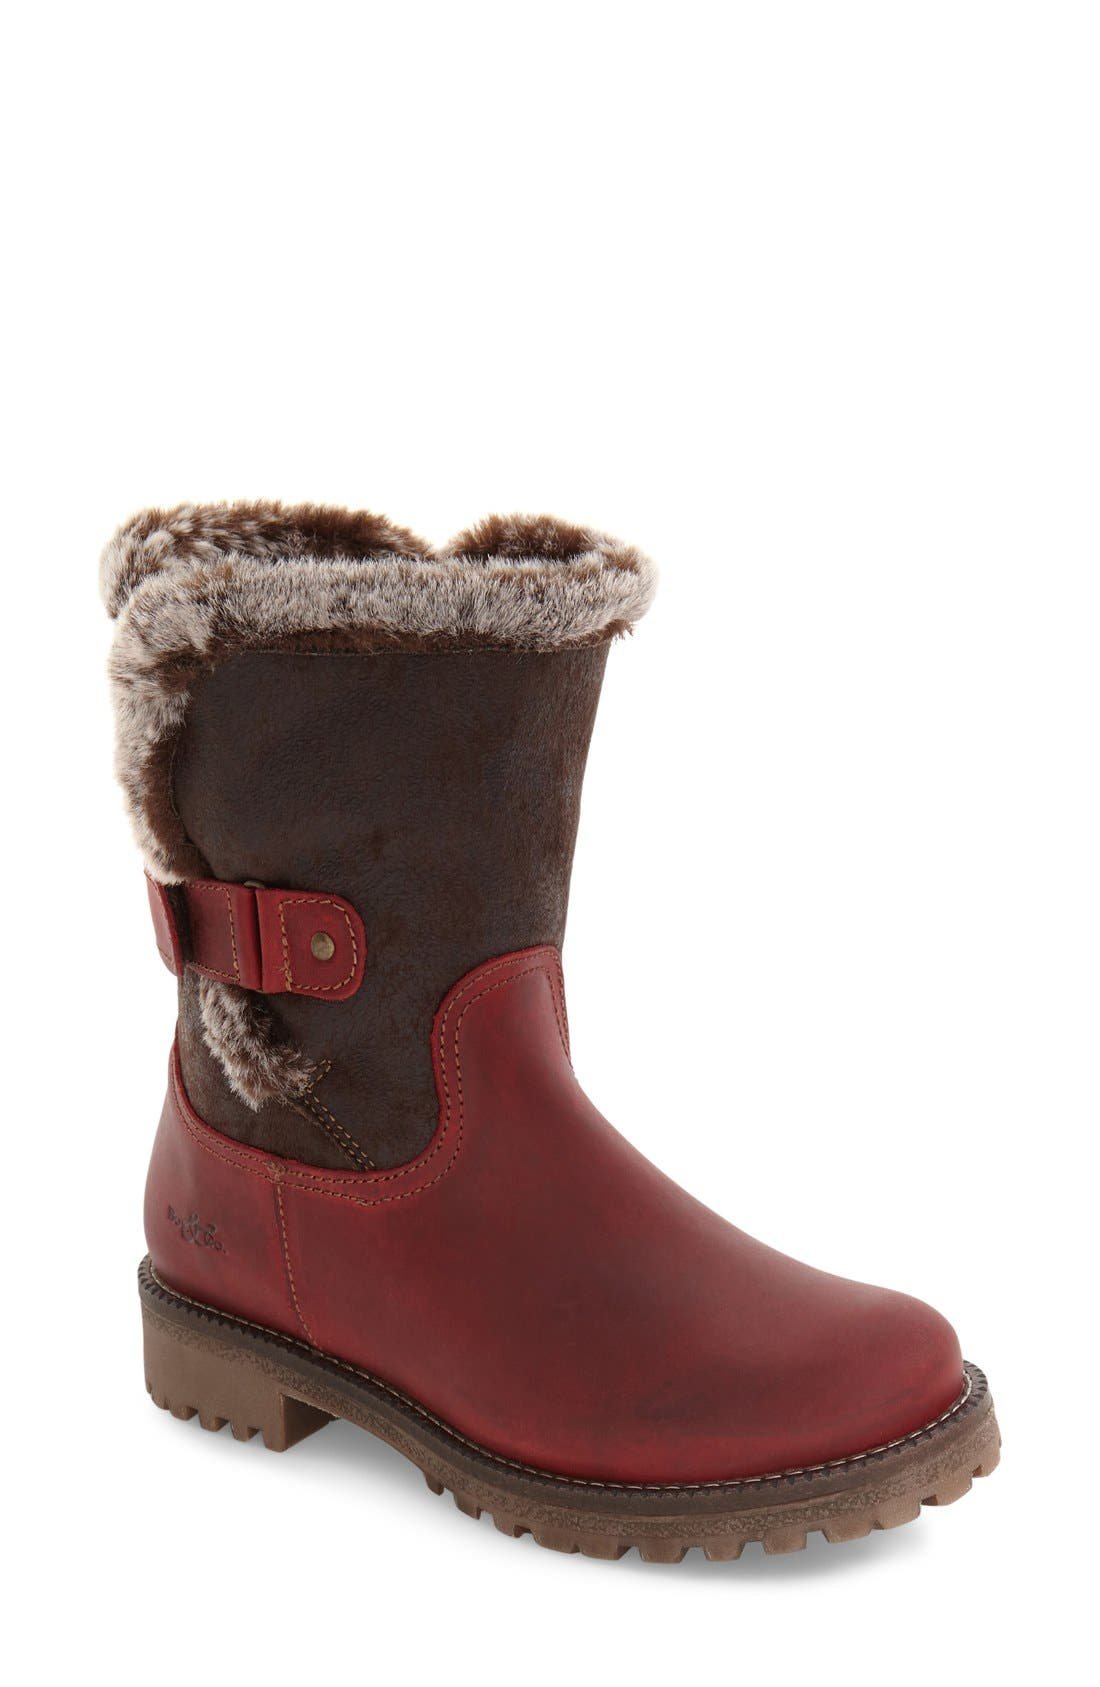 Alternate Image 1 Selected - Bos. & Co. Candy Waterproof Boot with Faux Fur Trim (Women)